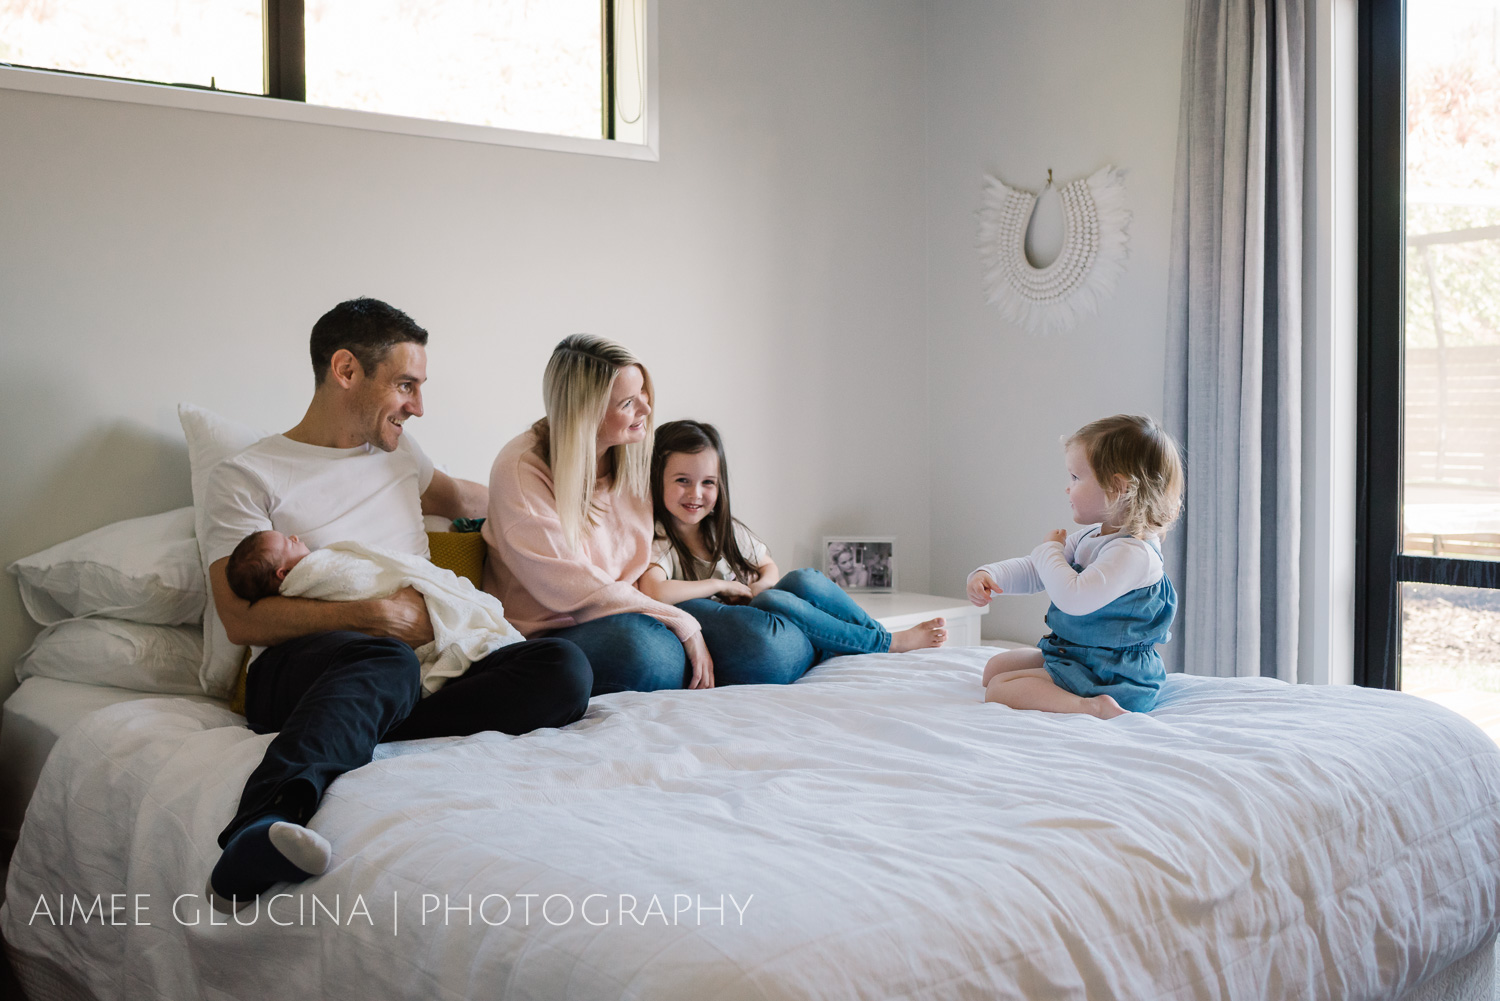 O'Keefe Lifestyle Newborn Session by Aimee Glucina Photography-11.jpg